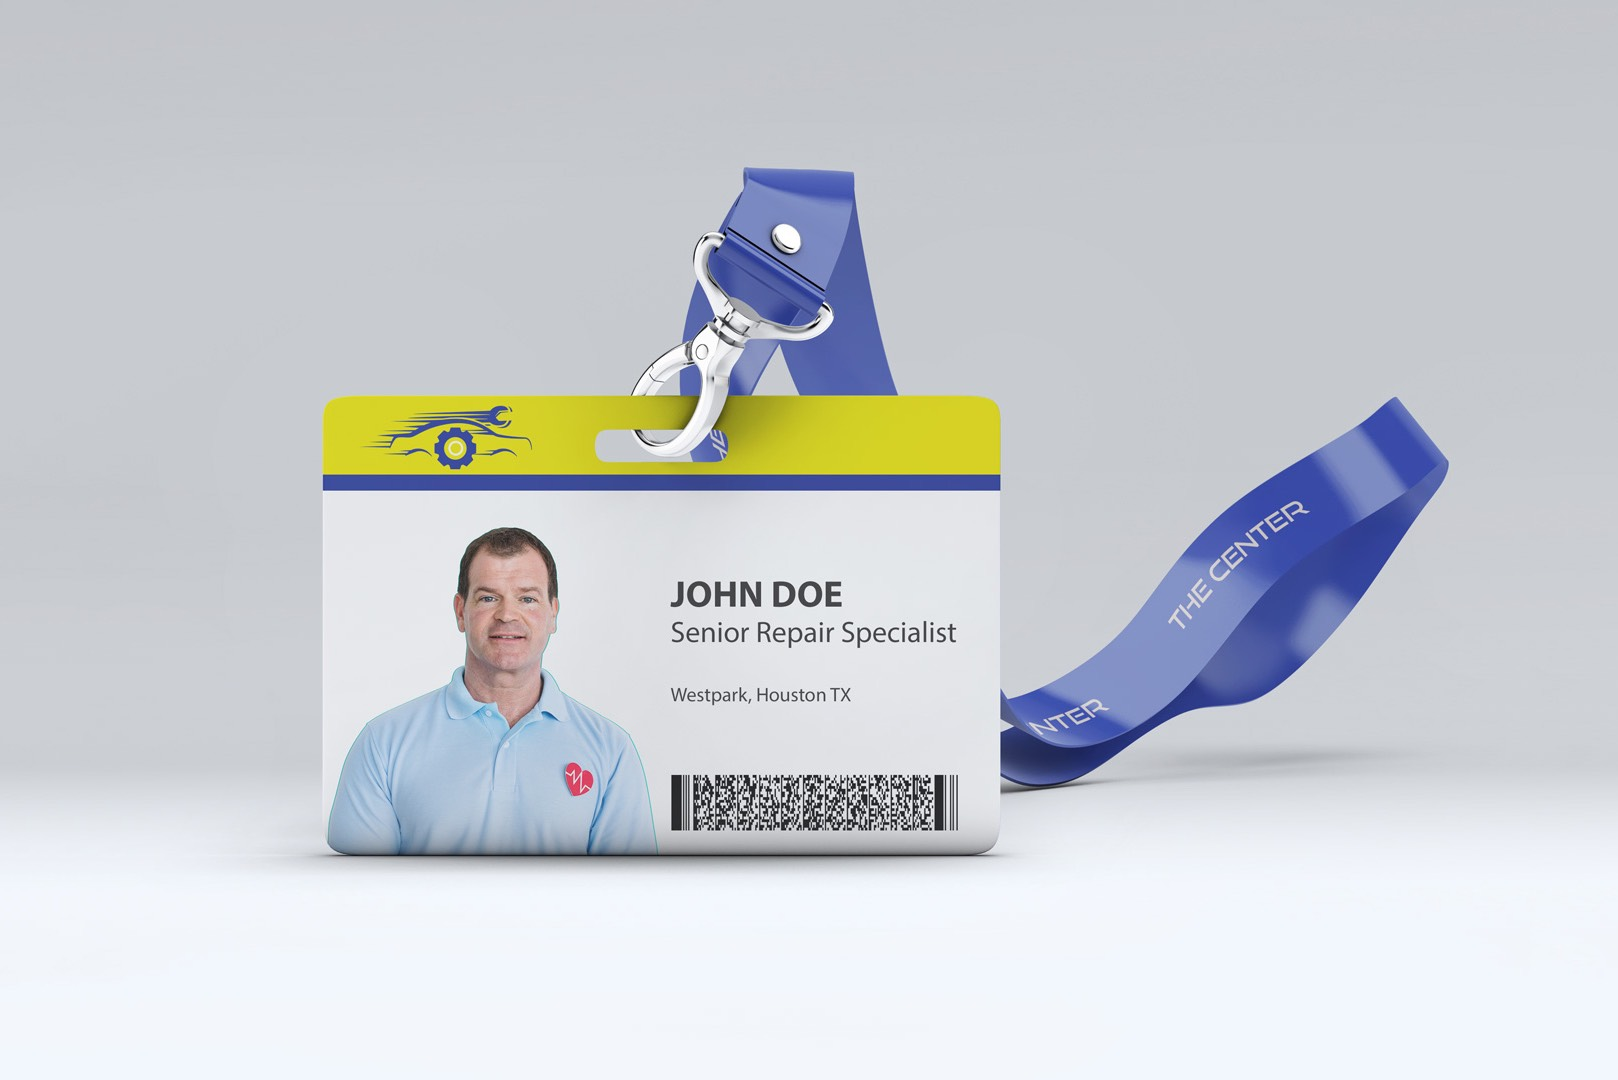 Employee access card and corporate identity design